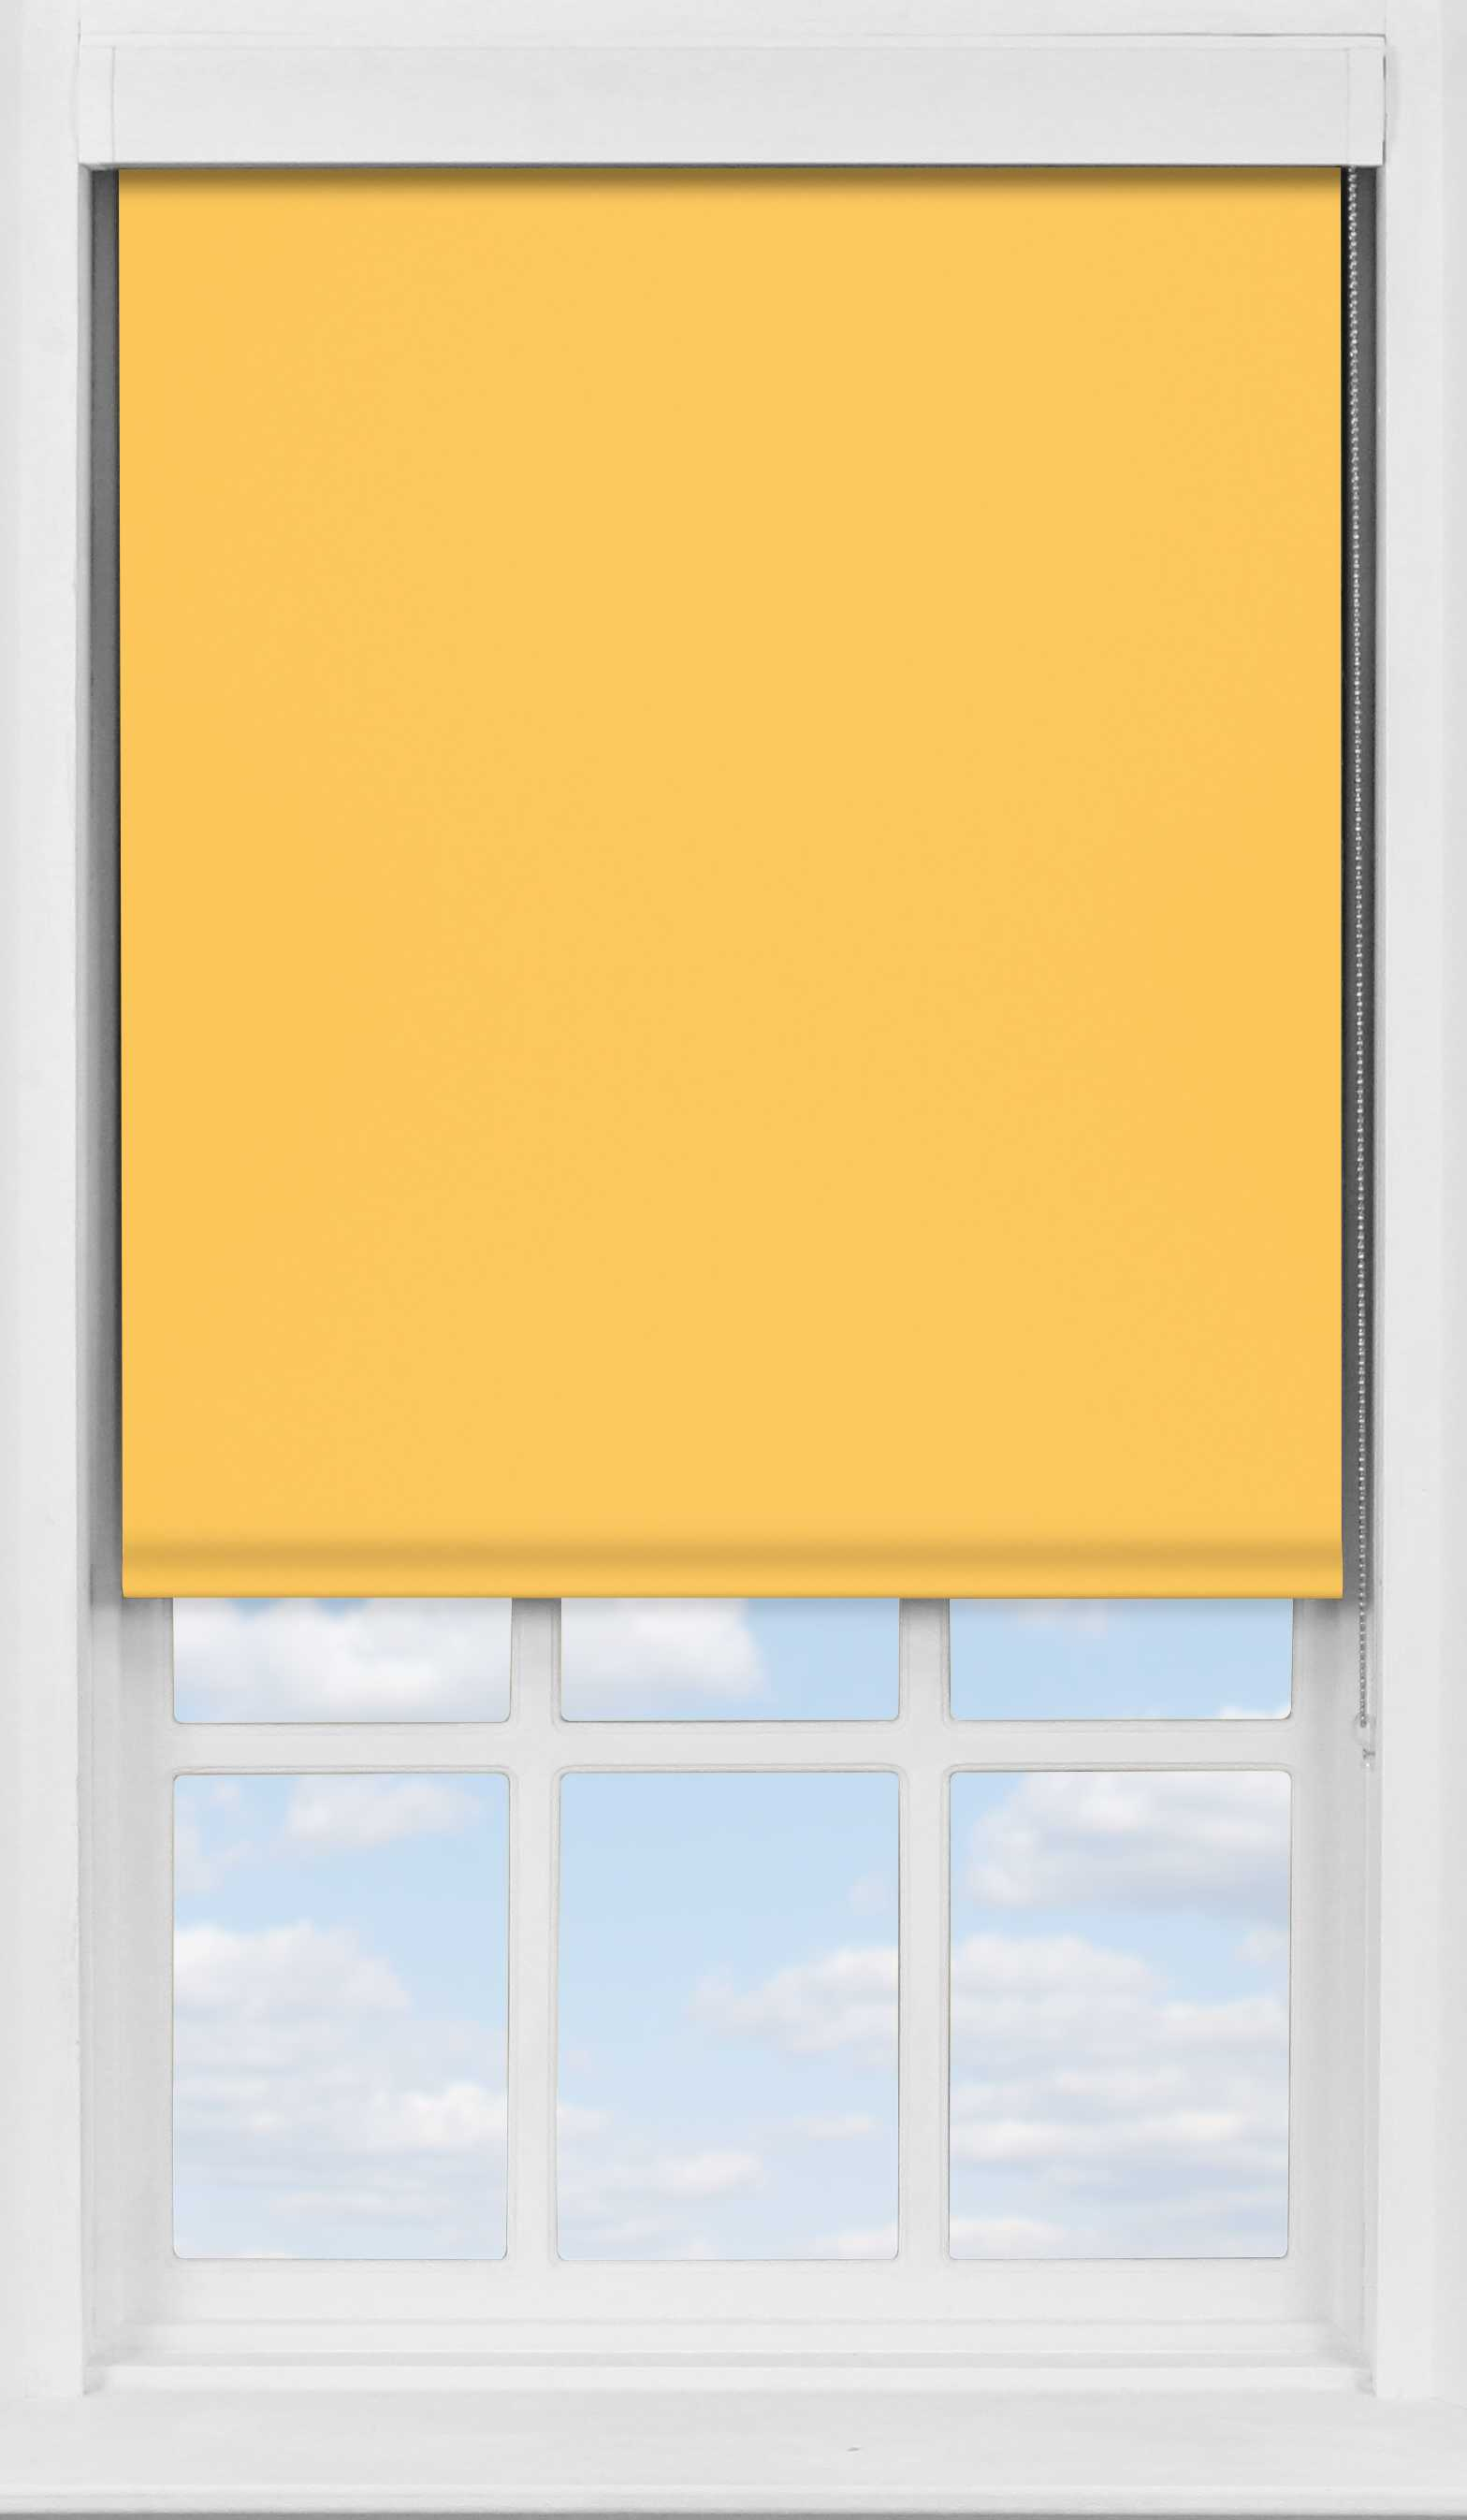 Premium Roller Blind in Whin Blackout